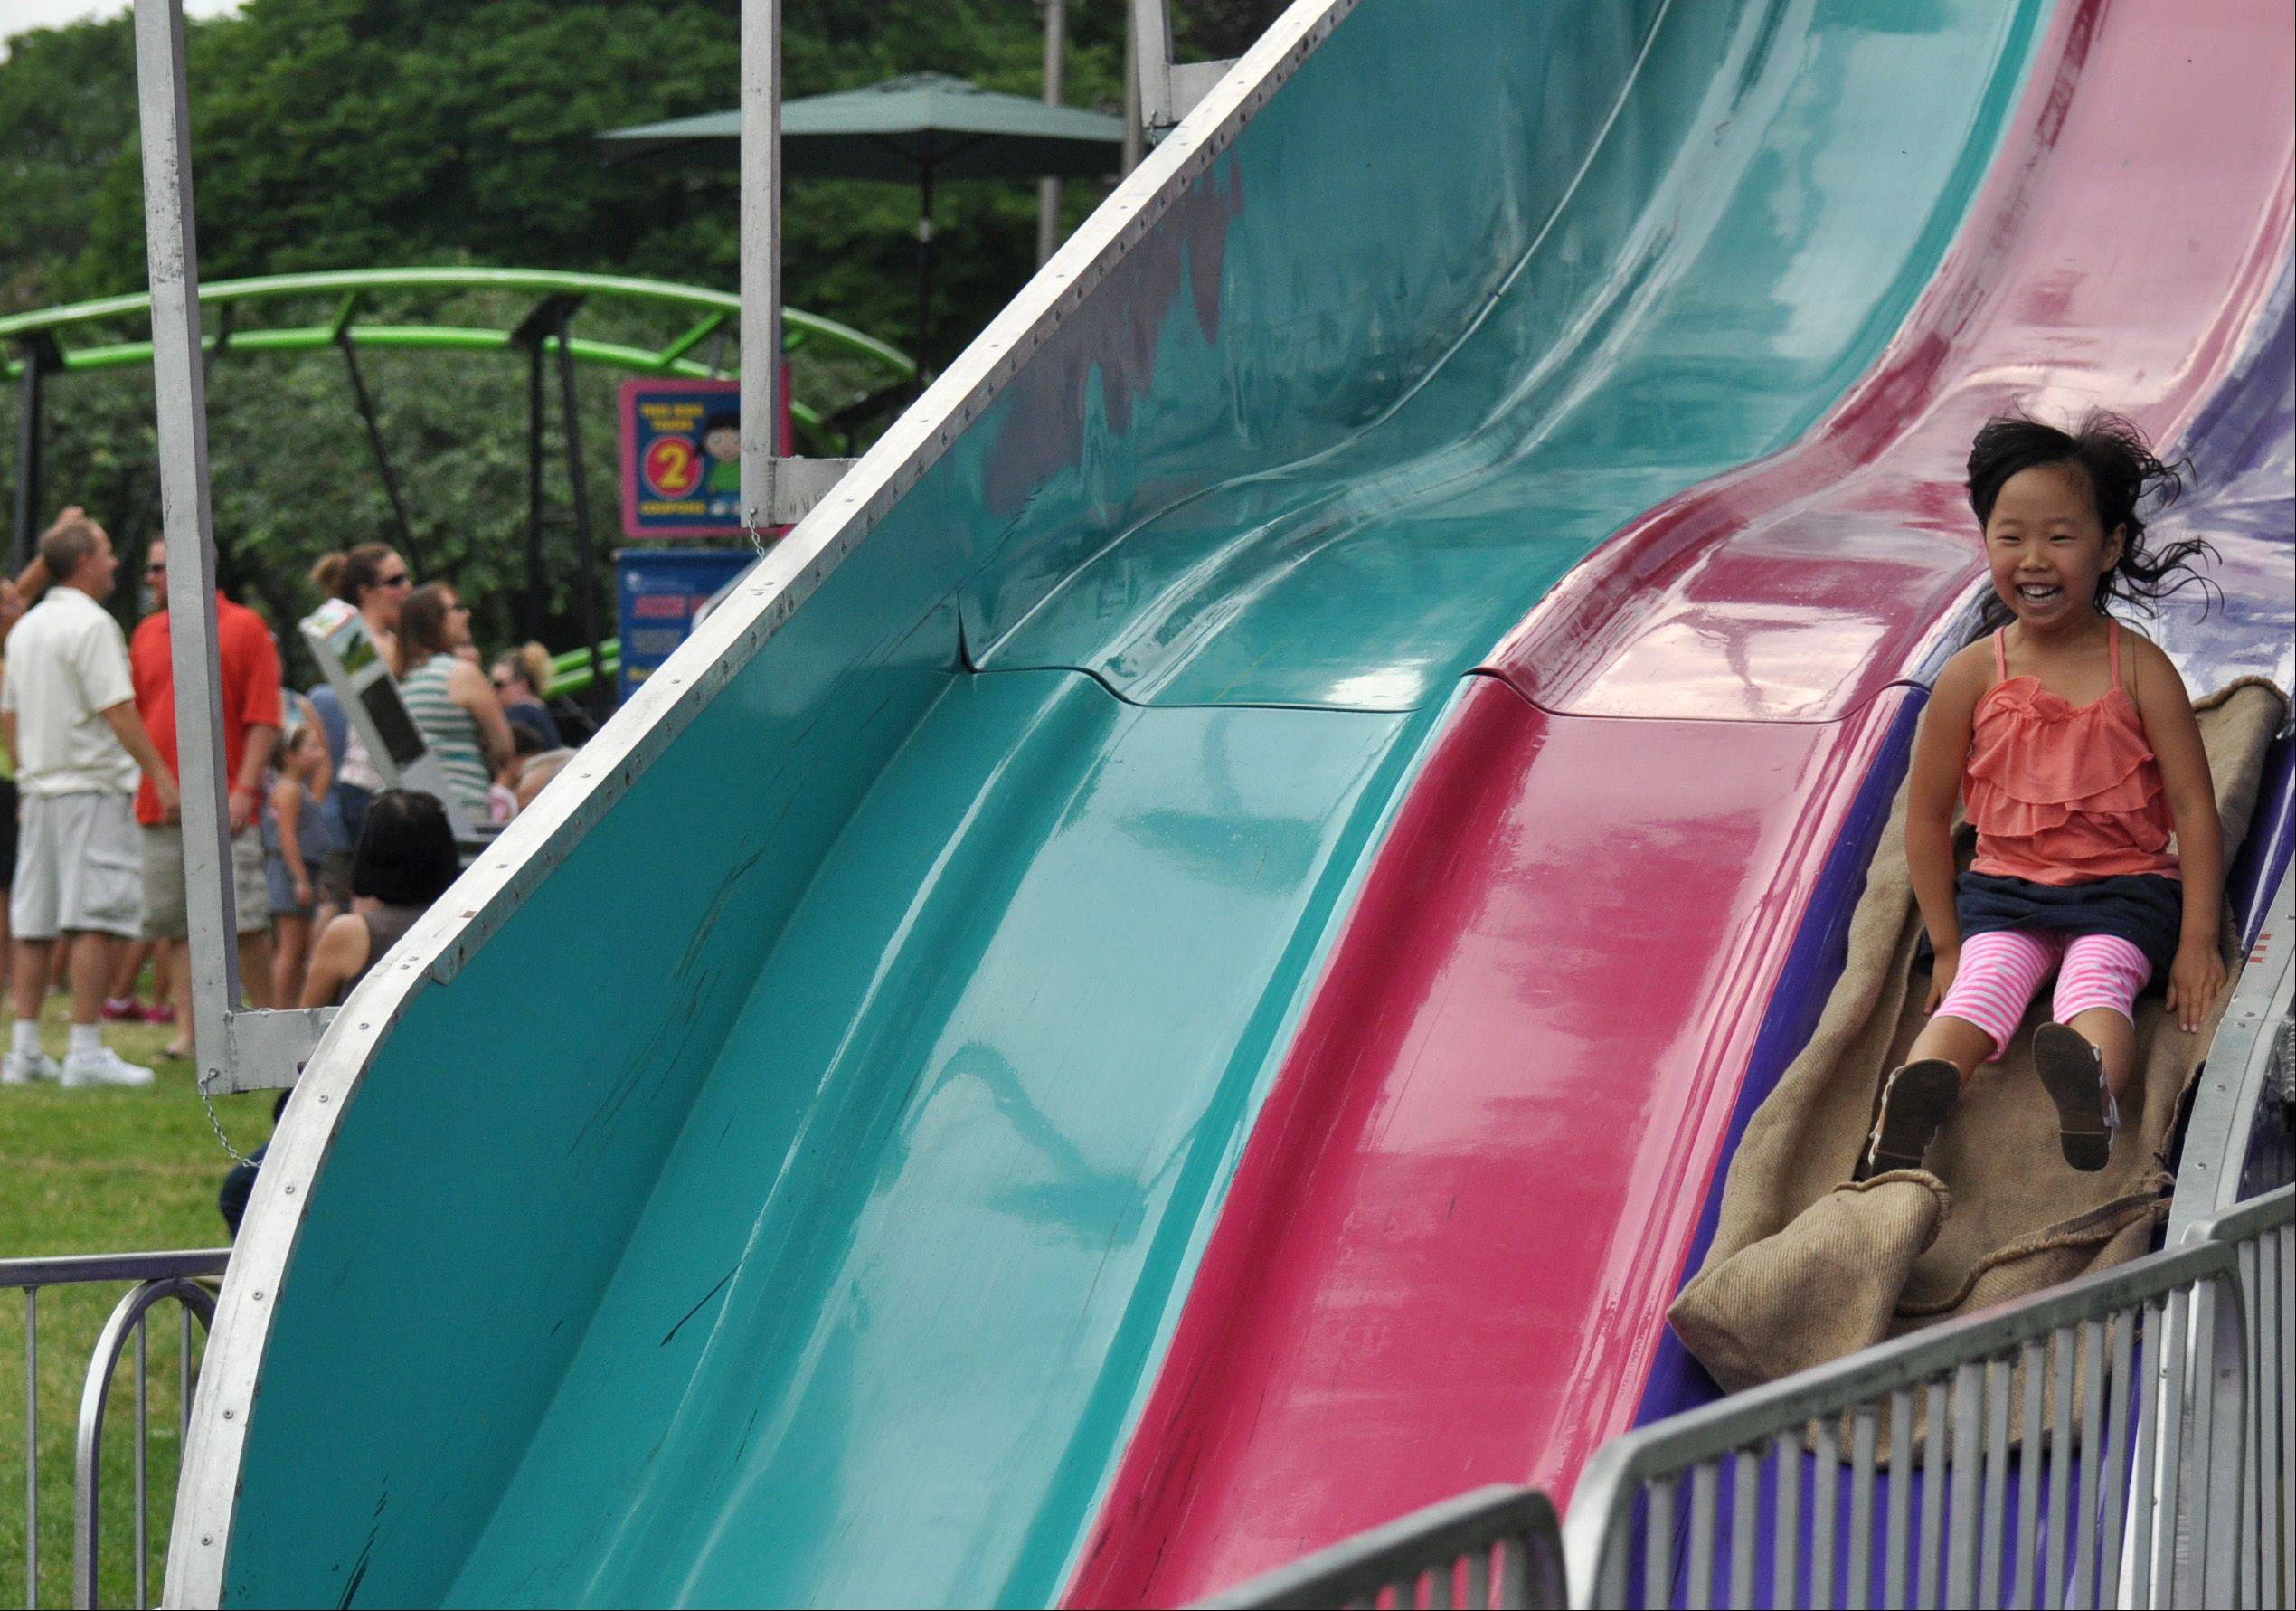 Kara Kim, 5, of Arlington Heights, rides the fun slide at Frontier Days in Arlington Heights on Saturday.